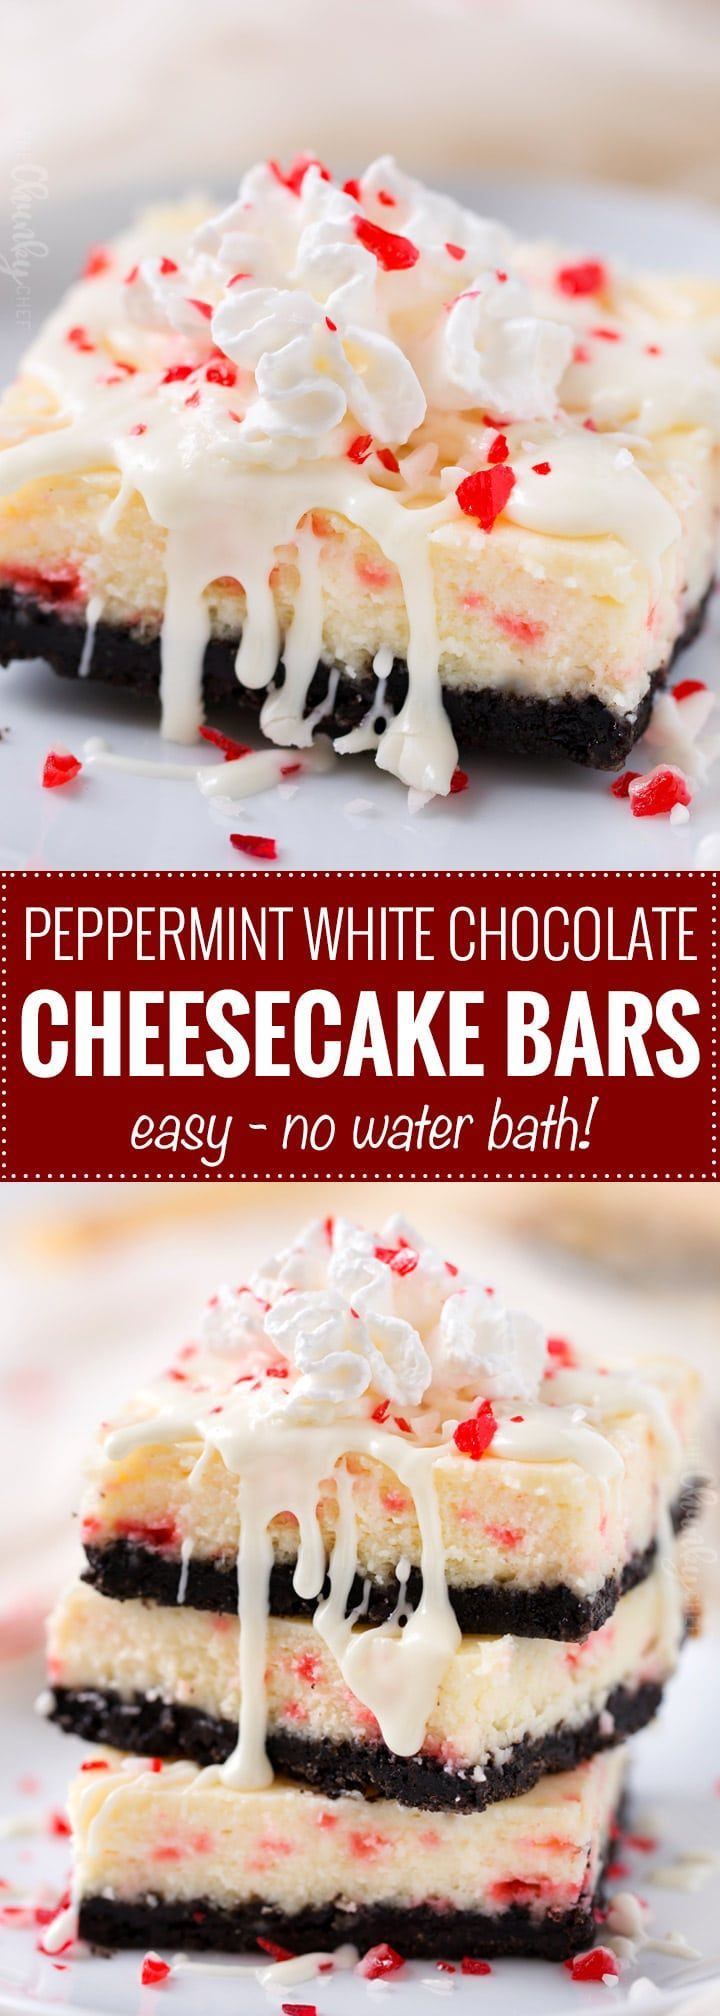 Peppermint White Chocolate Cheesecake Bars - An Oreo cookie crust, velvety smooth white chocolate peppermint cheesecake filling, candy cane pieces, and an extra drizzle of creamy white chocolate - The Chunky Chef